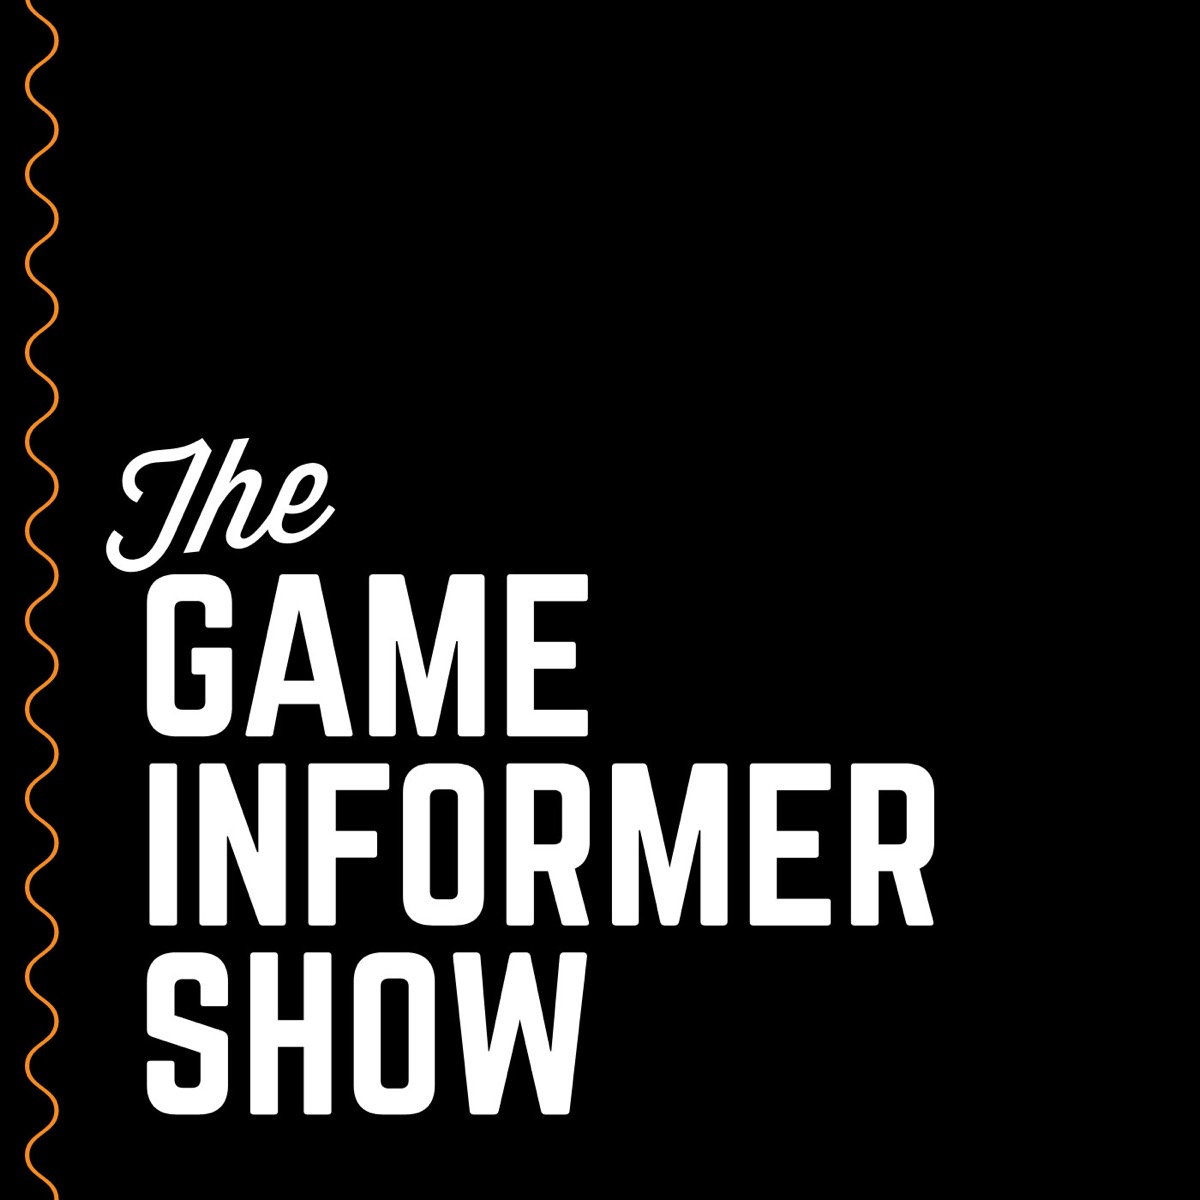 Gi Show Playstation 5 Vs Xbox Series X What It All Means The Game Informer Show Lyssna Har Poddtoppen Se